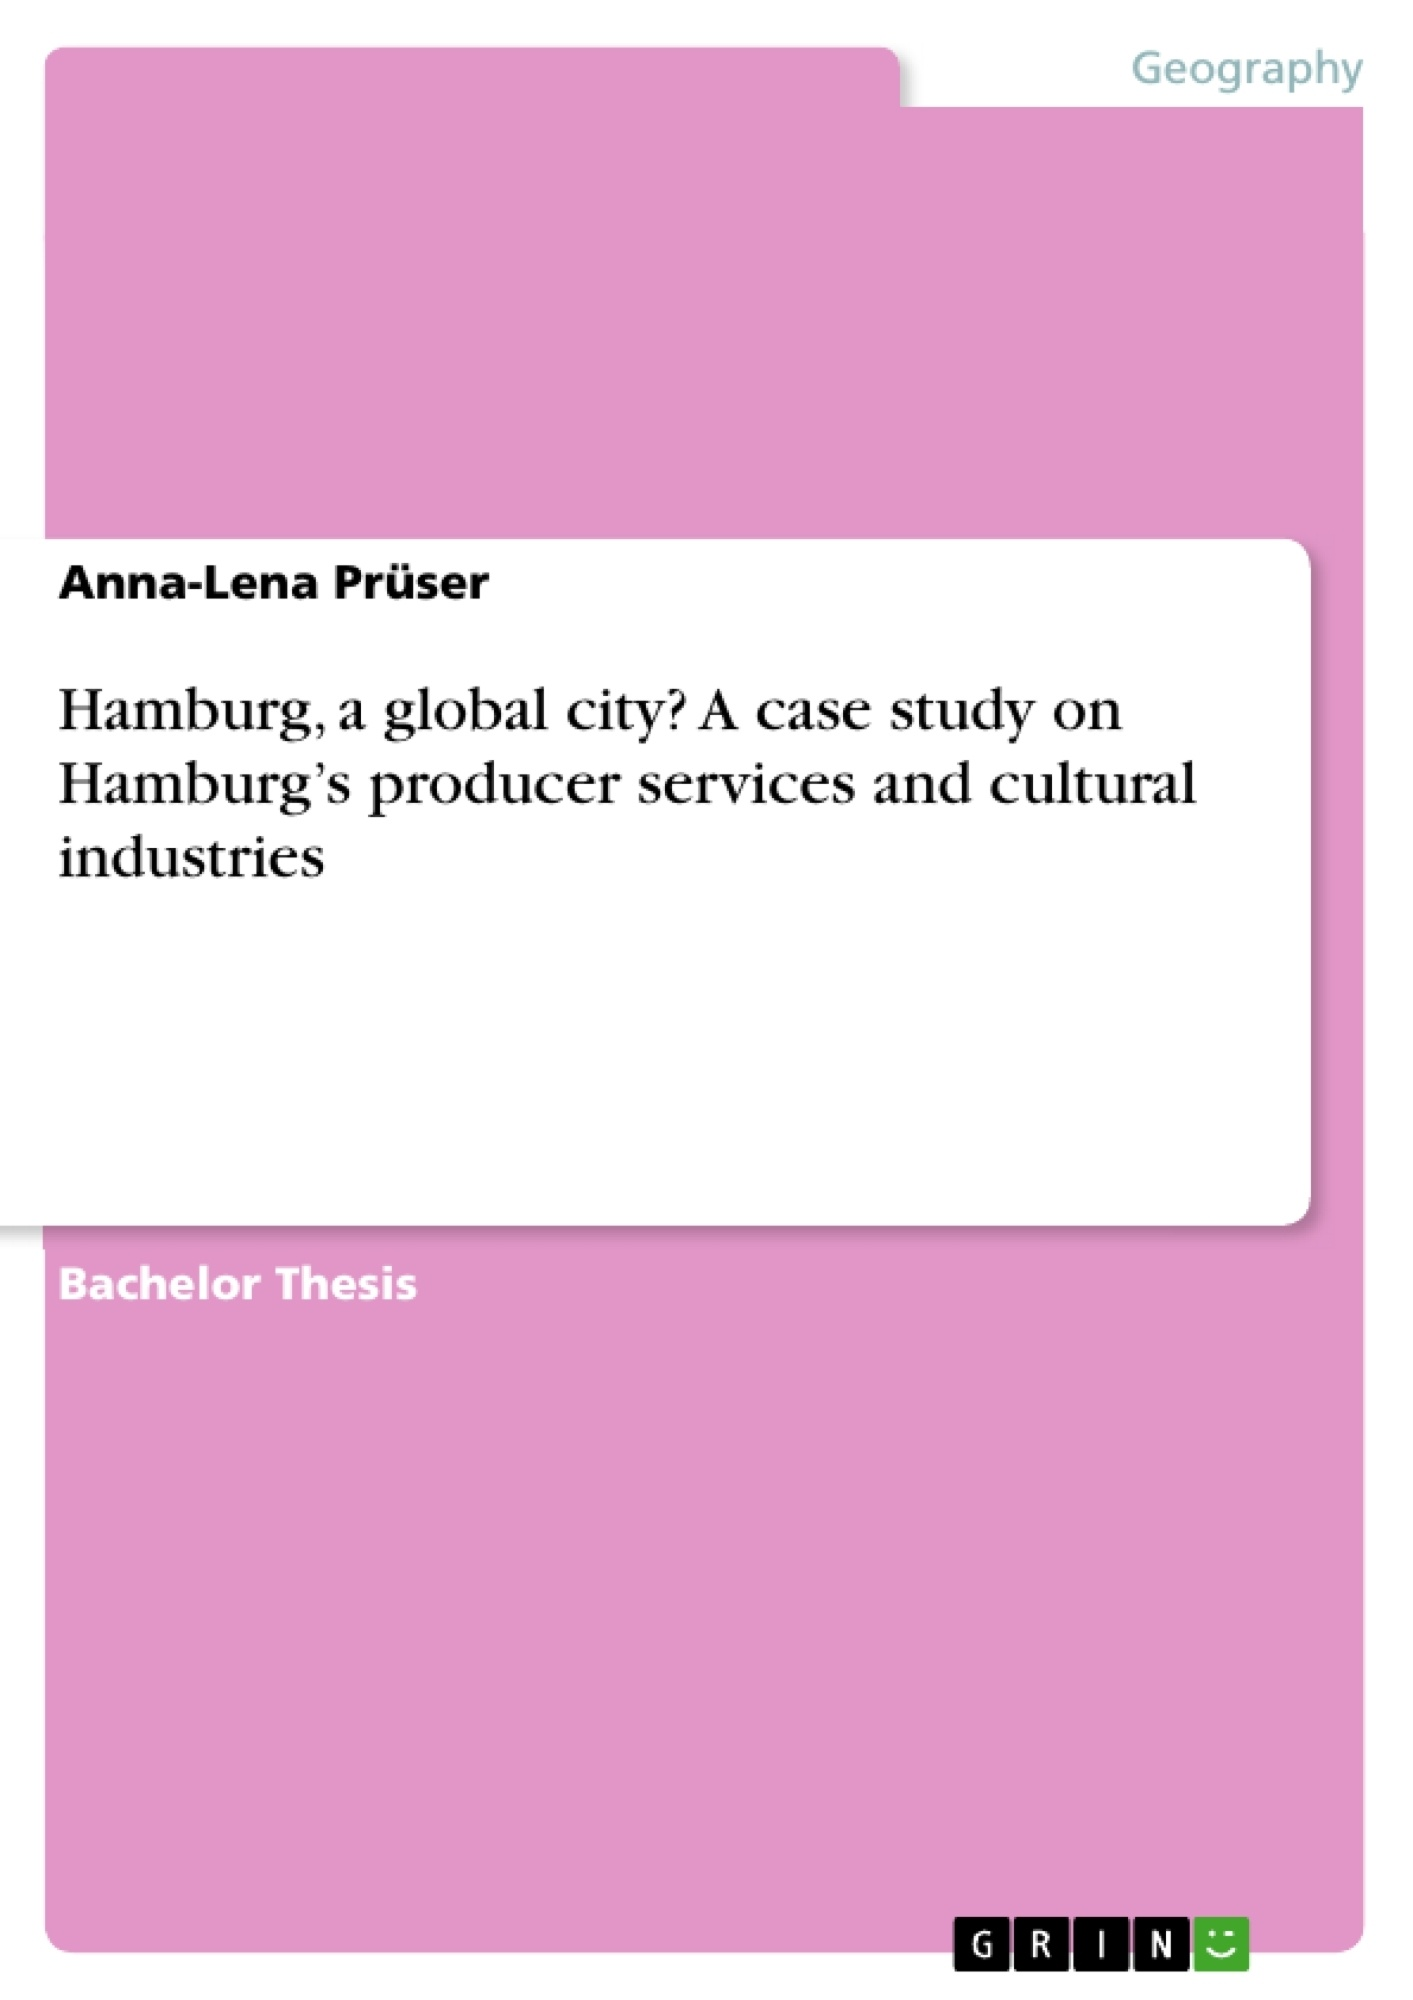 Title: Hamburg, a global city?  A case study on Hamburg's producer services and cultural industries